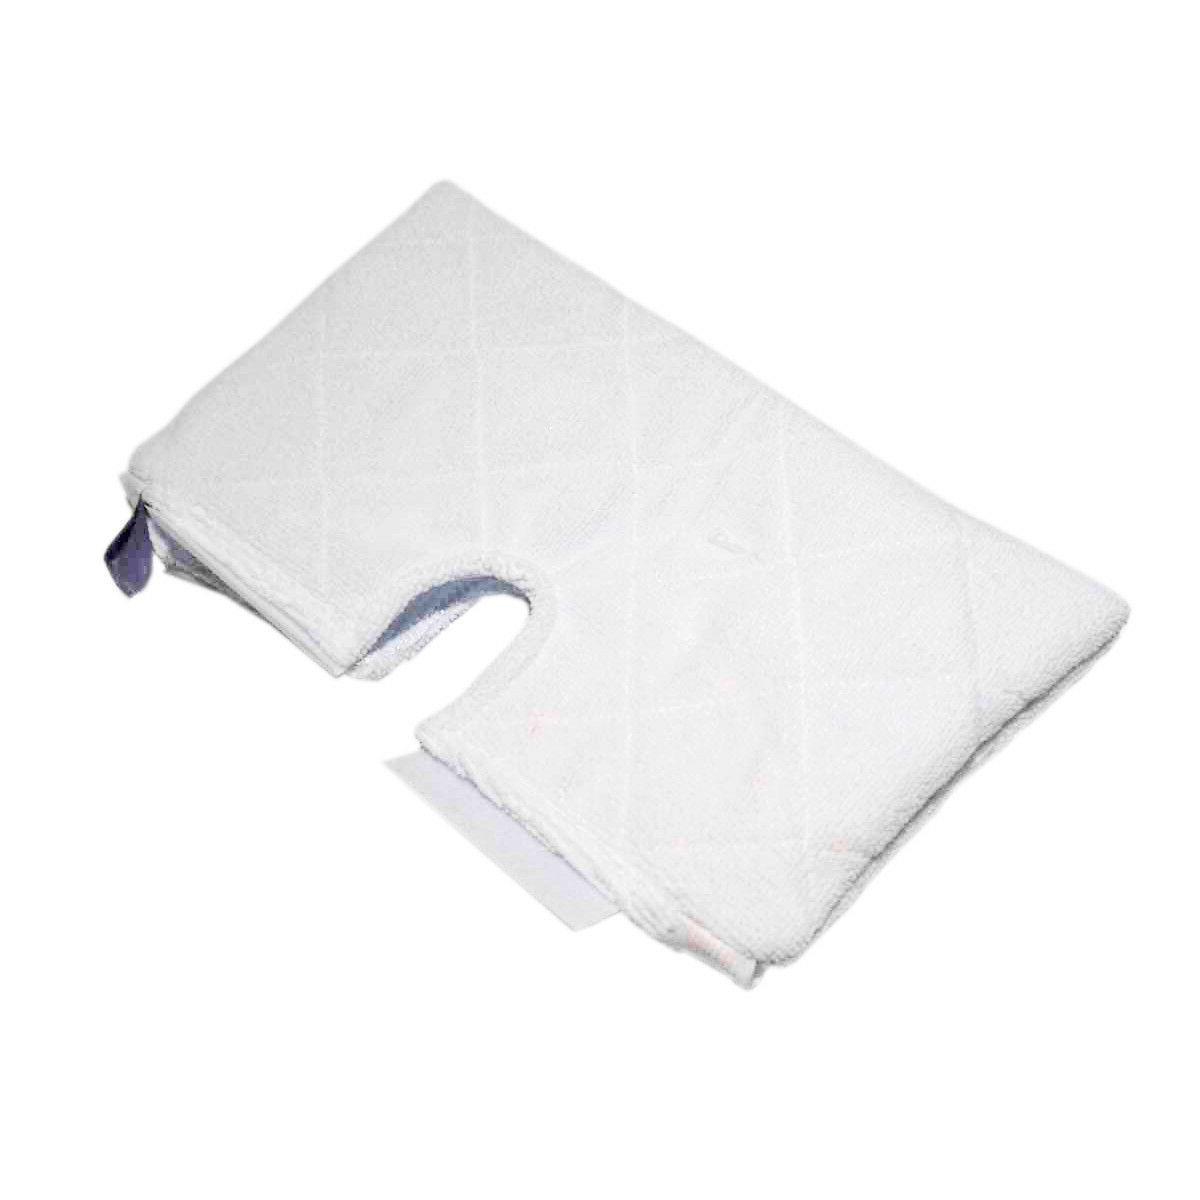 3 Steam Mop Pads Shark Steam Pad Replacement